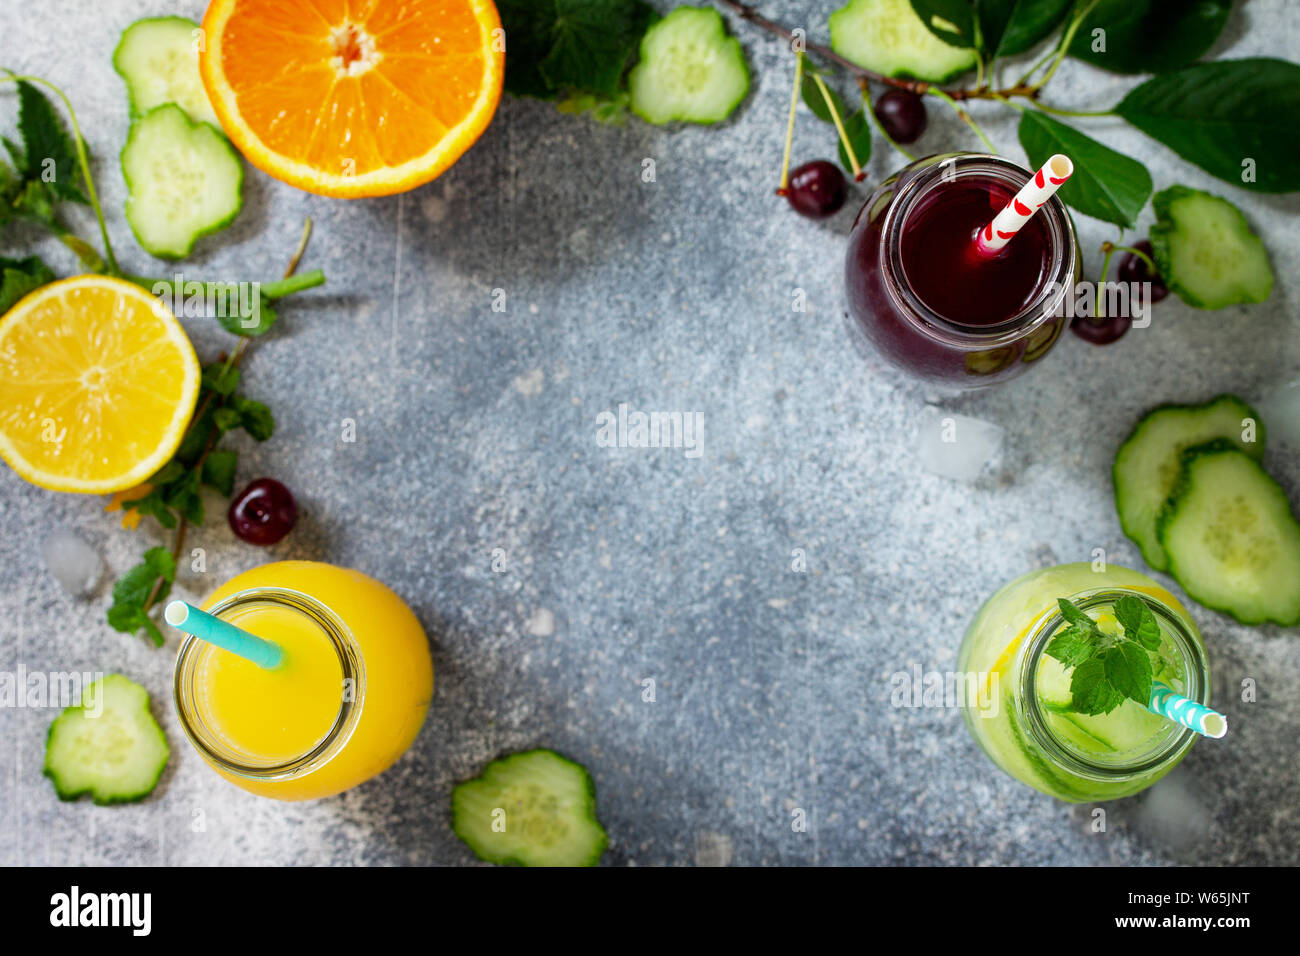 Various refreshments drinks - detox cucumber water, cherry juice and orange juice on stone table. Top view flat lay with copy space for your text. Stock Photo